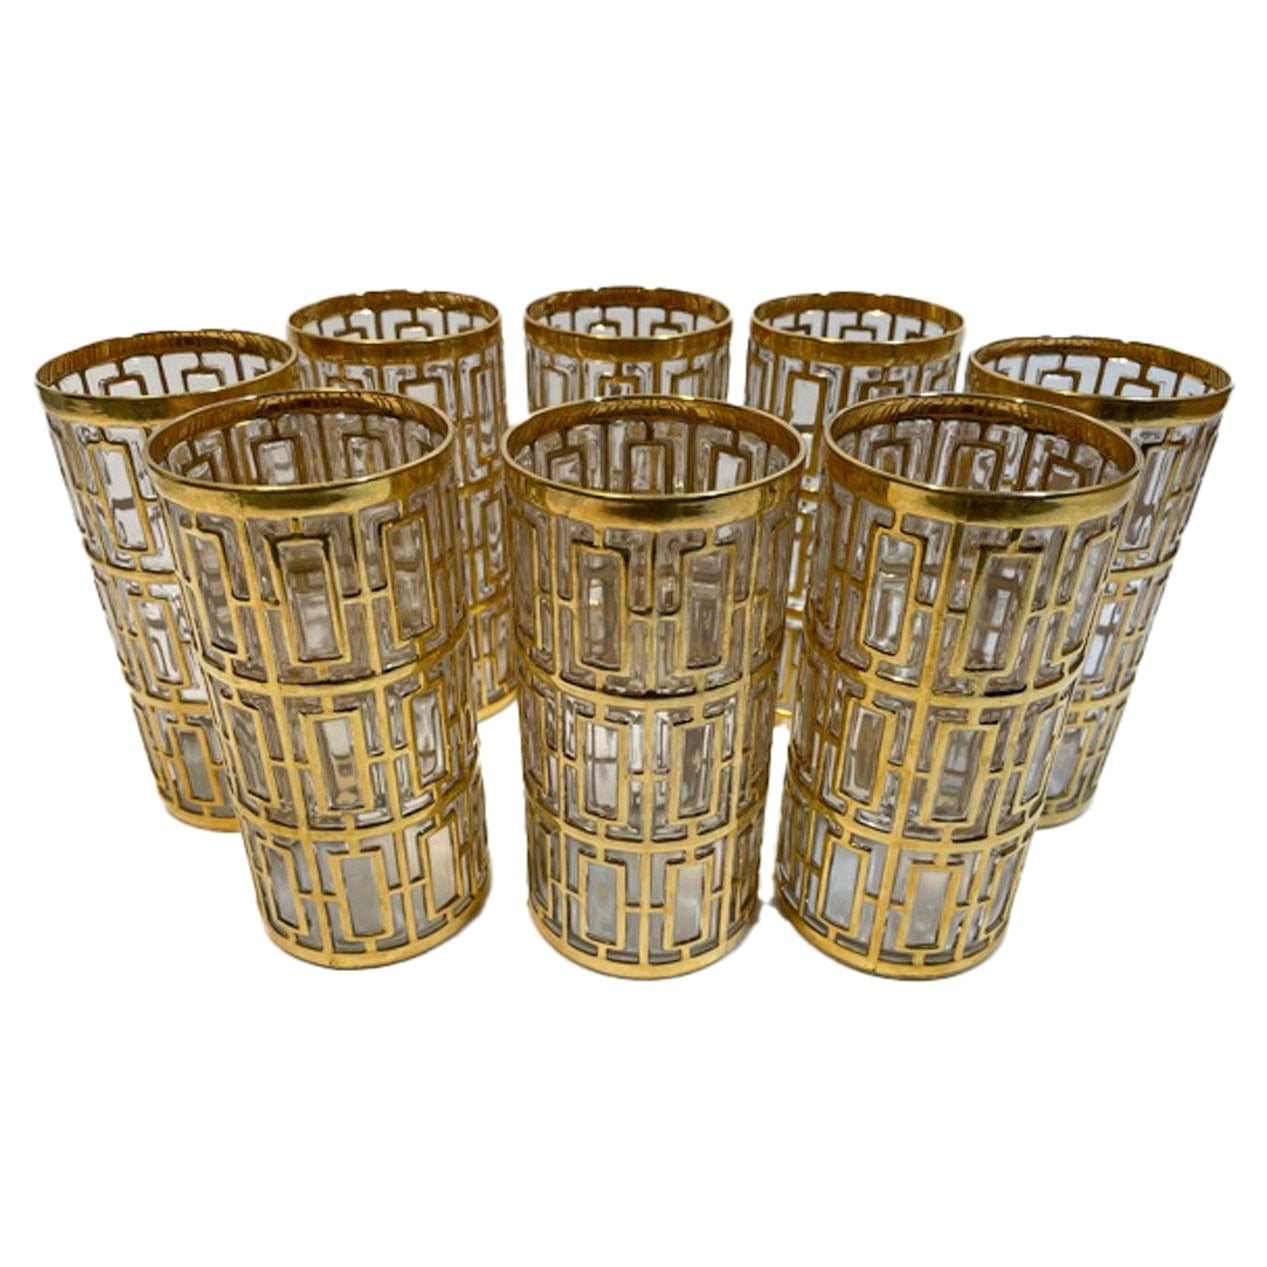 Vintage Set of 8 Imperial Glass Co. Highball Glasses in the Shoji Pattern